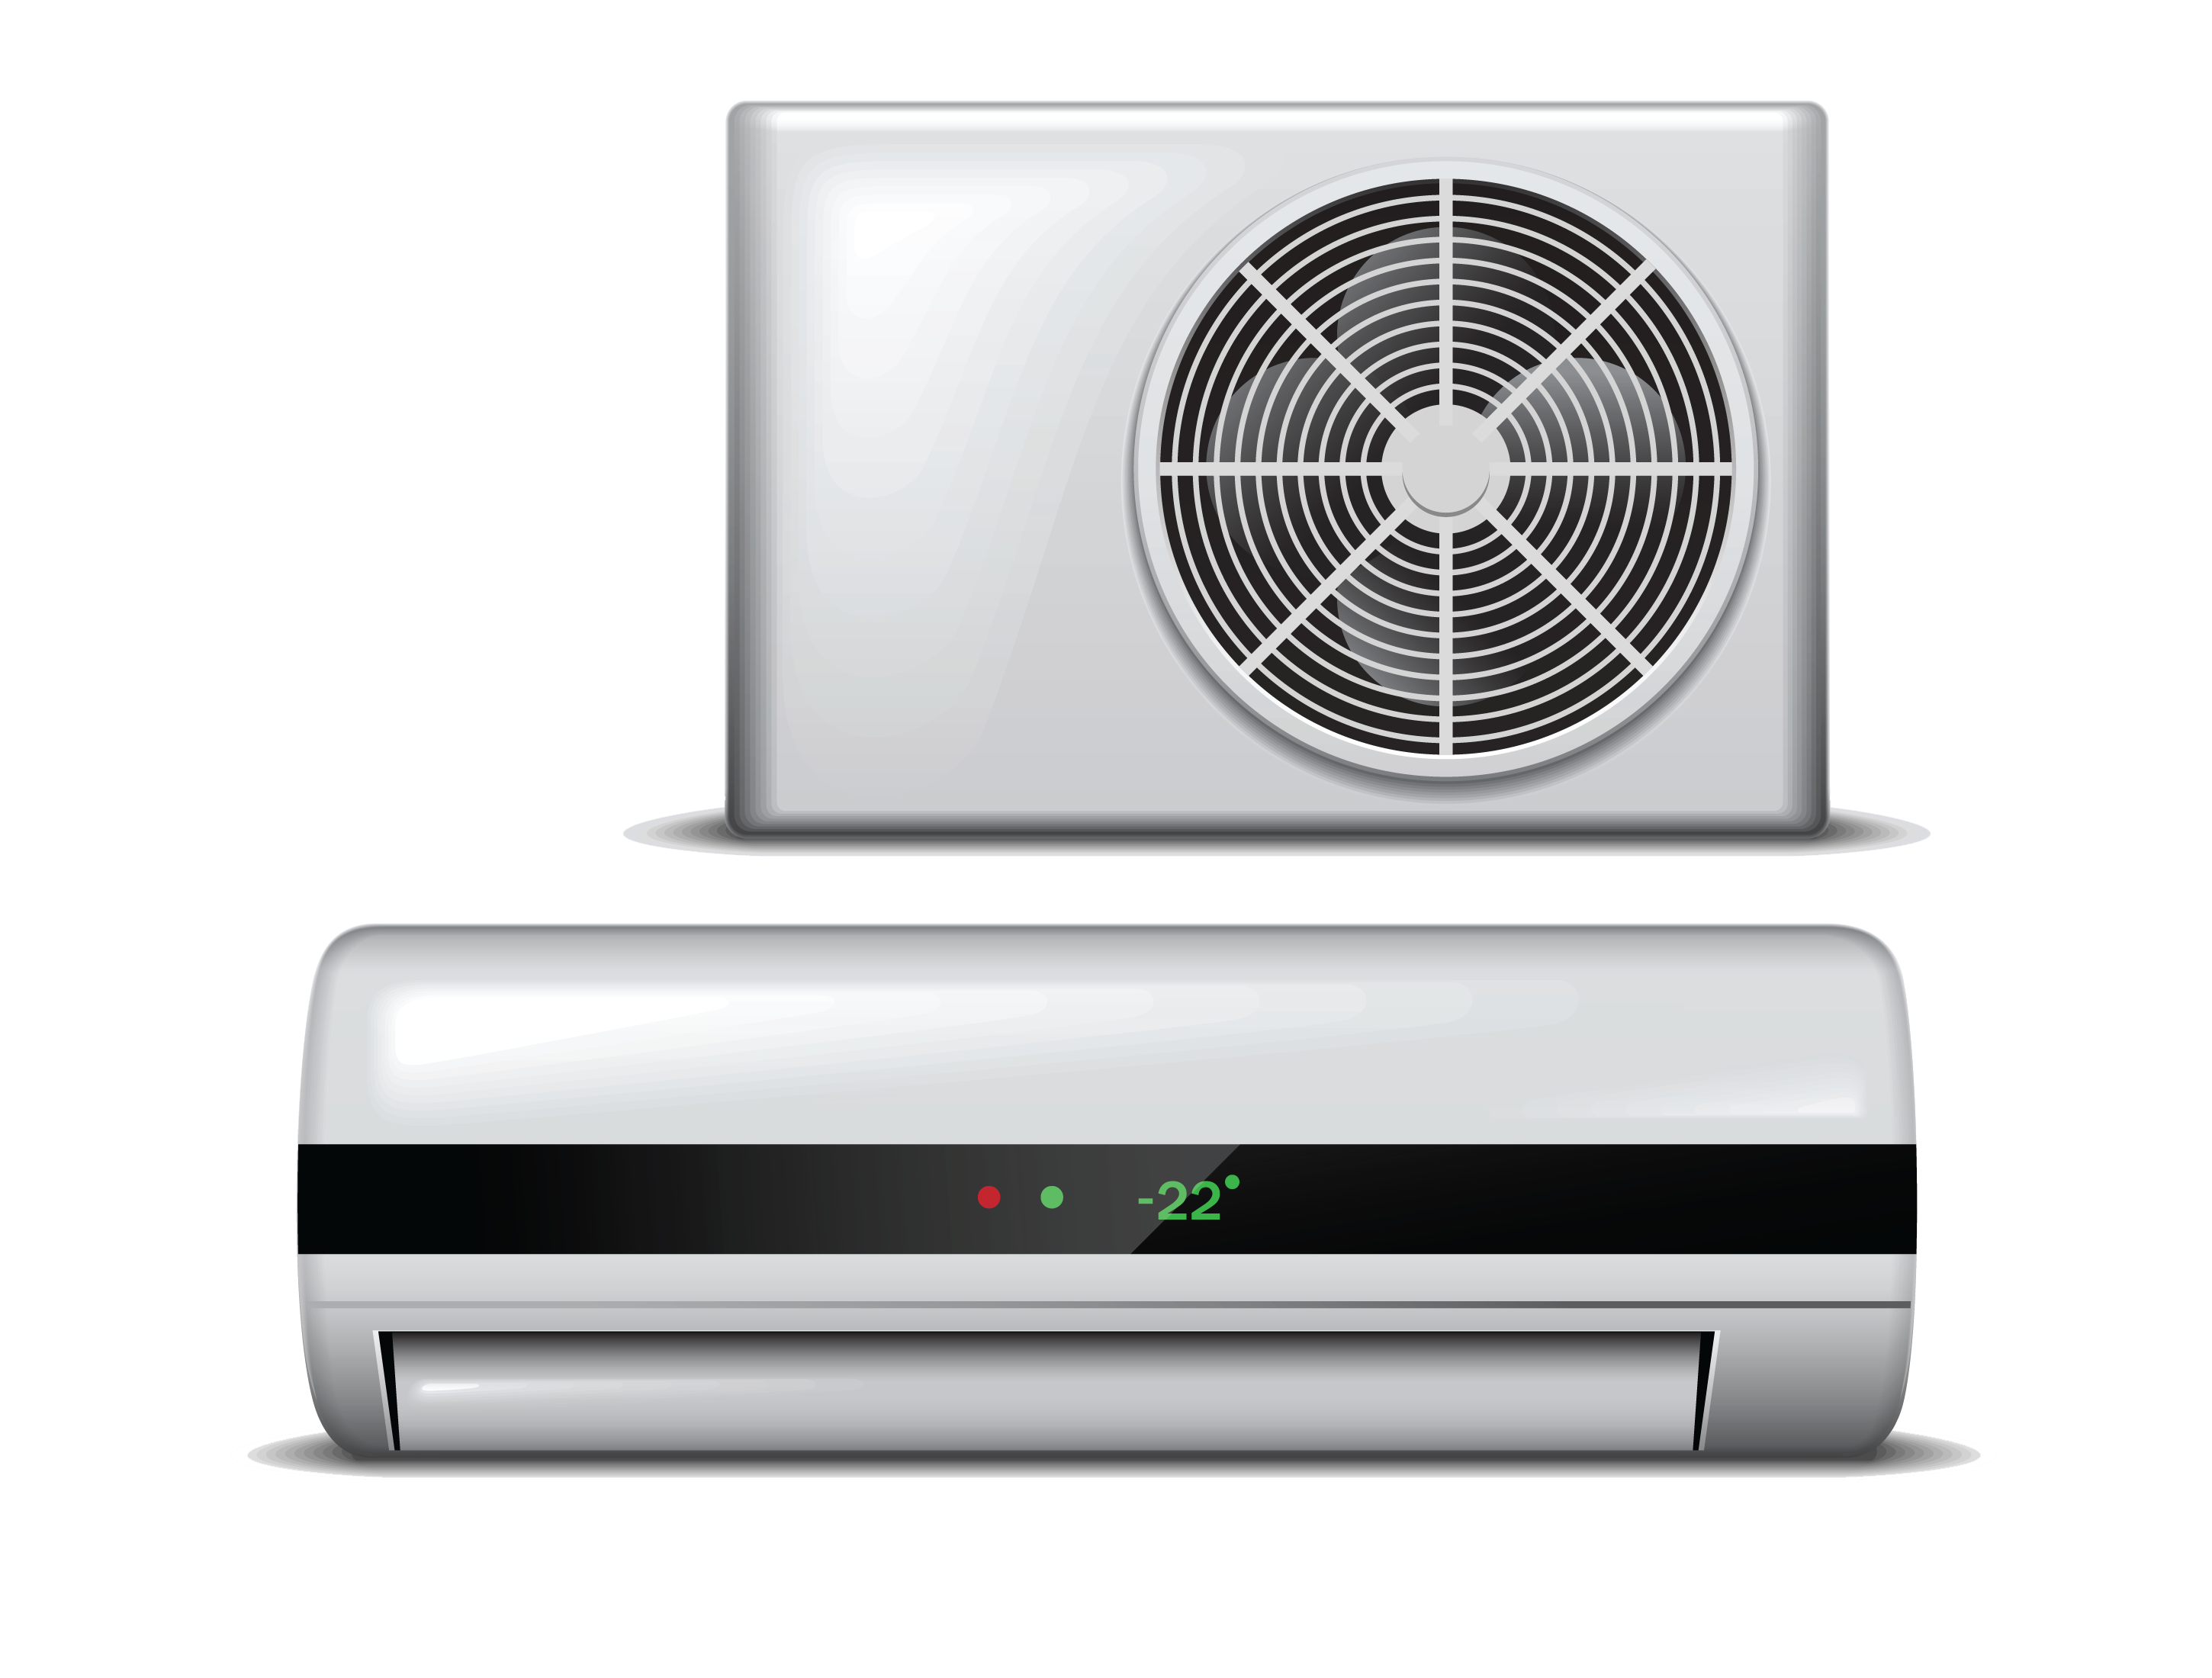 Ac Png Image Png Image - Advertising, Transparent background PNG HD thumbnail